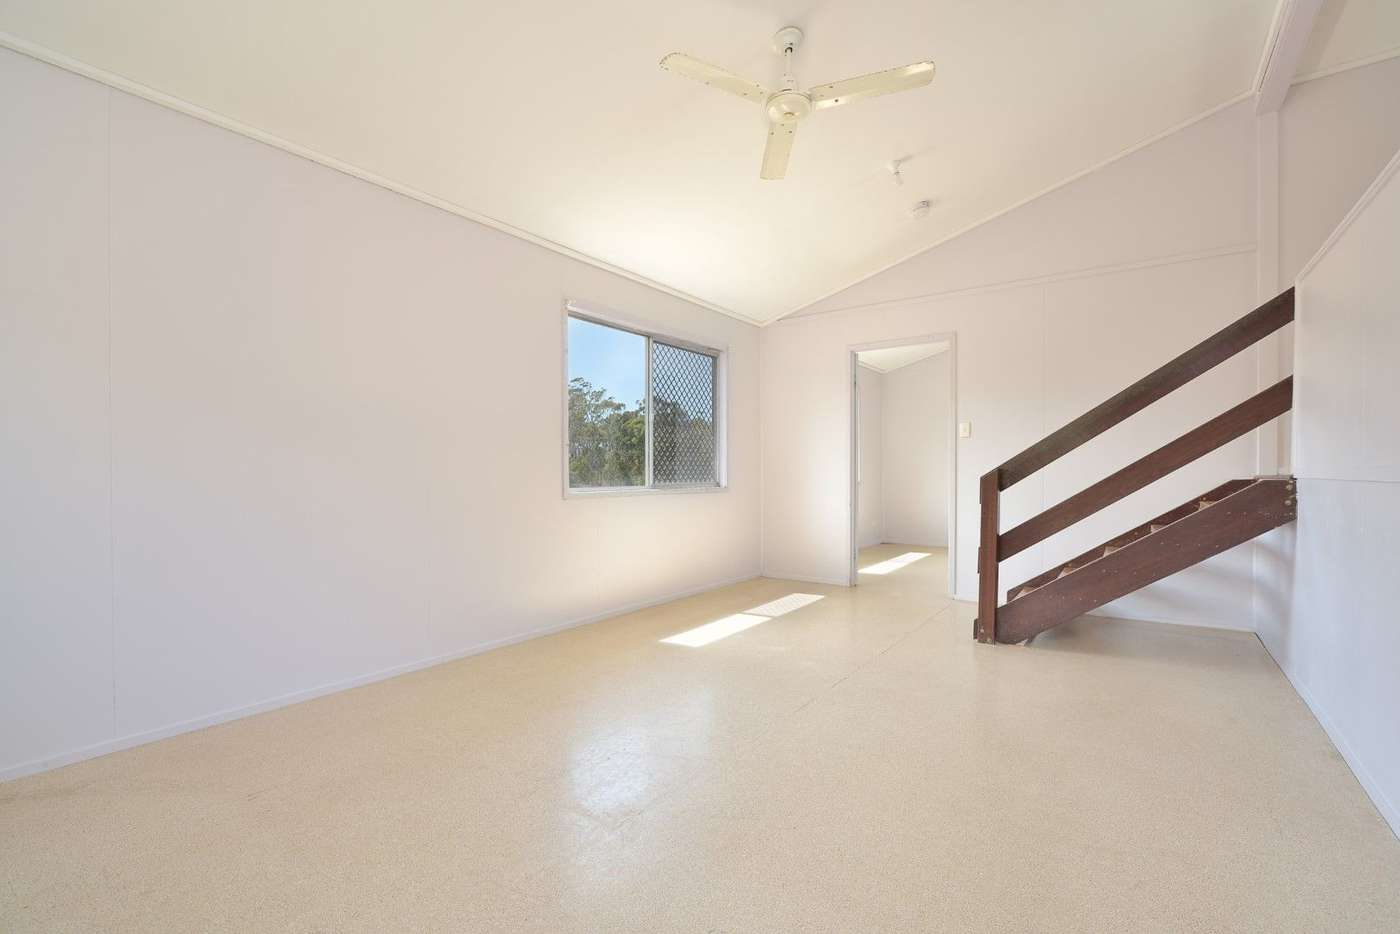 Seventh view of Homely house listing, 112 Dalrymple Drive, Toolooa QLD 4680